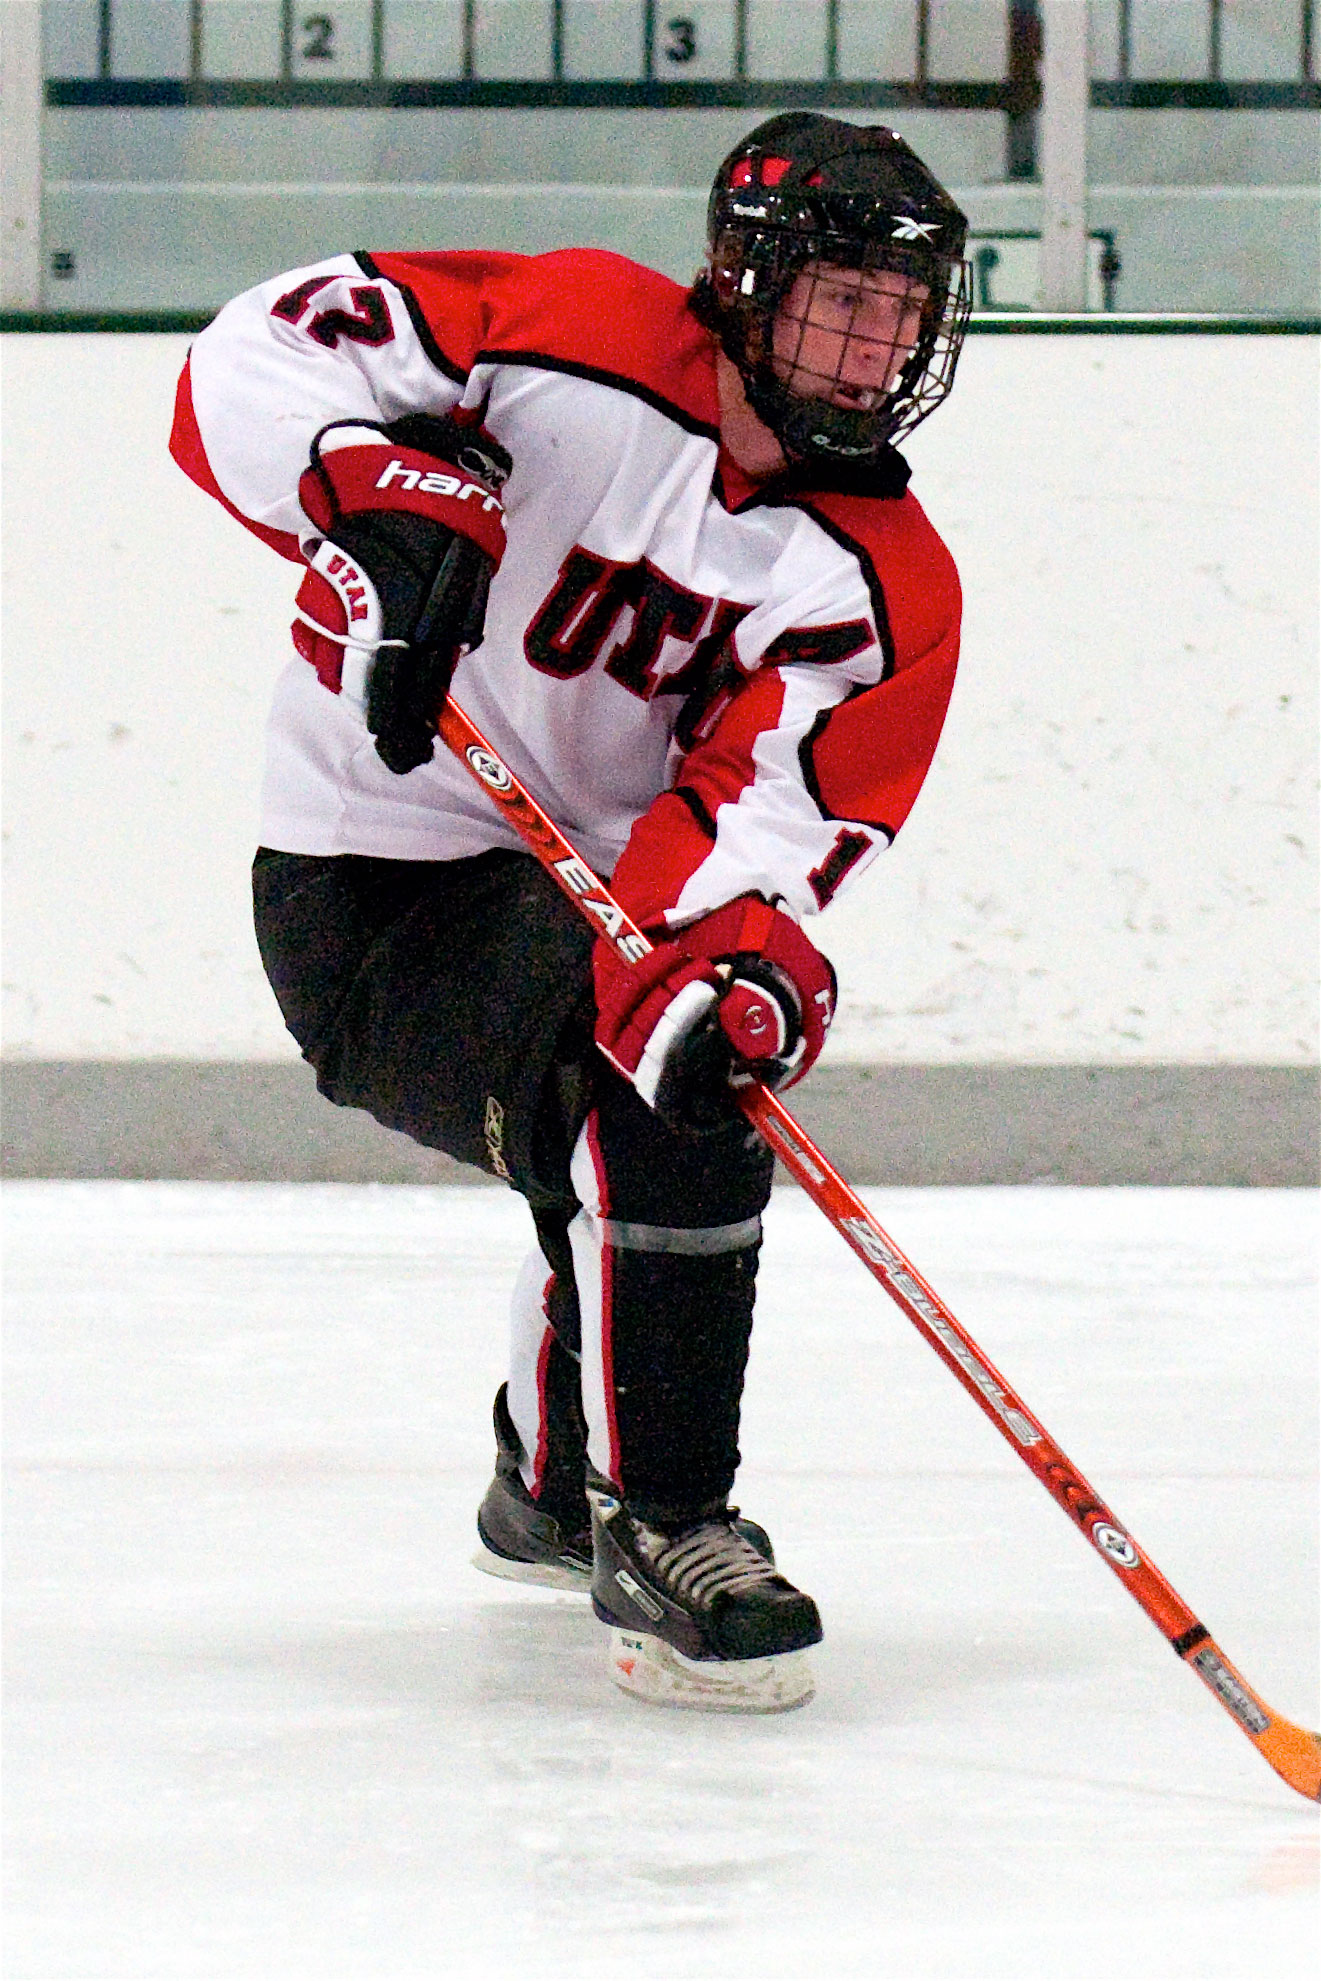 Most Penalty Minutes (Career): Andrew Reed - 303